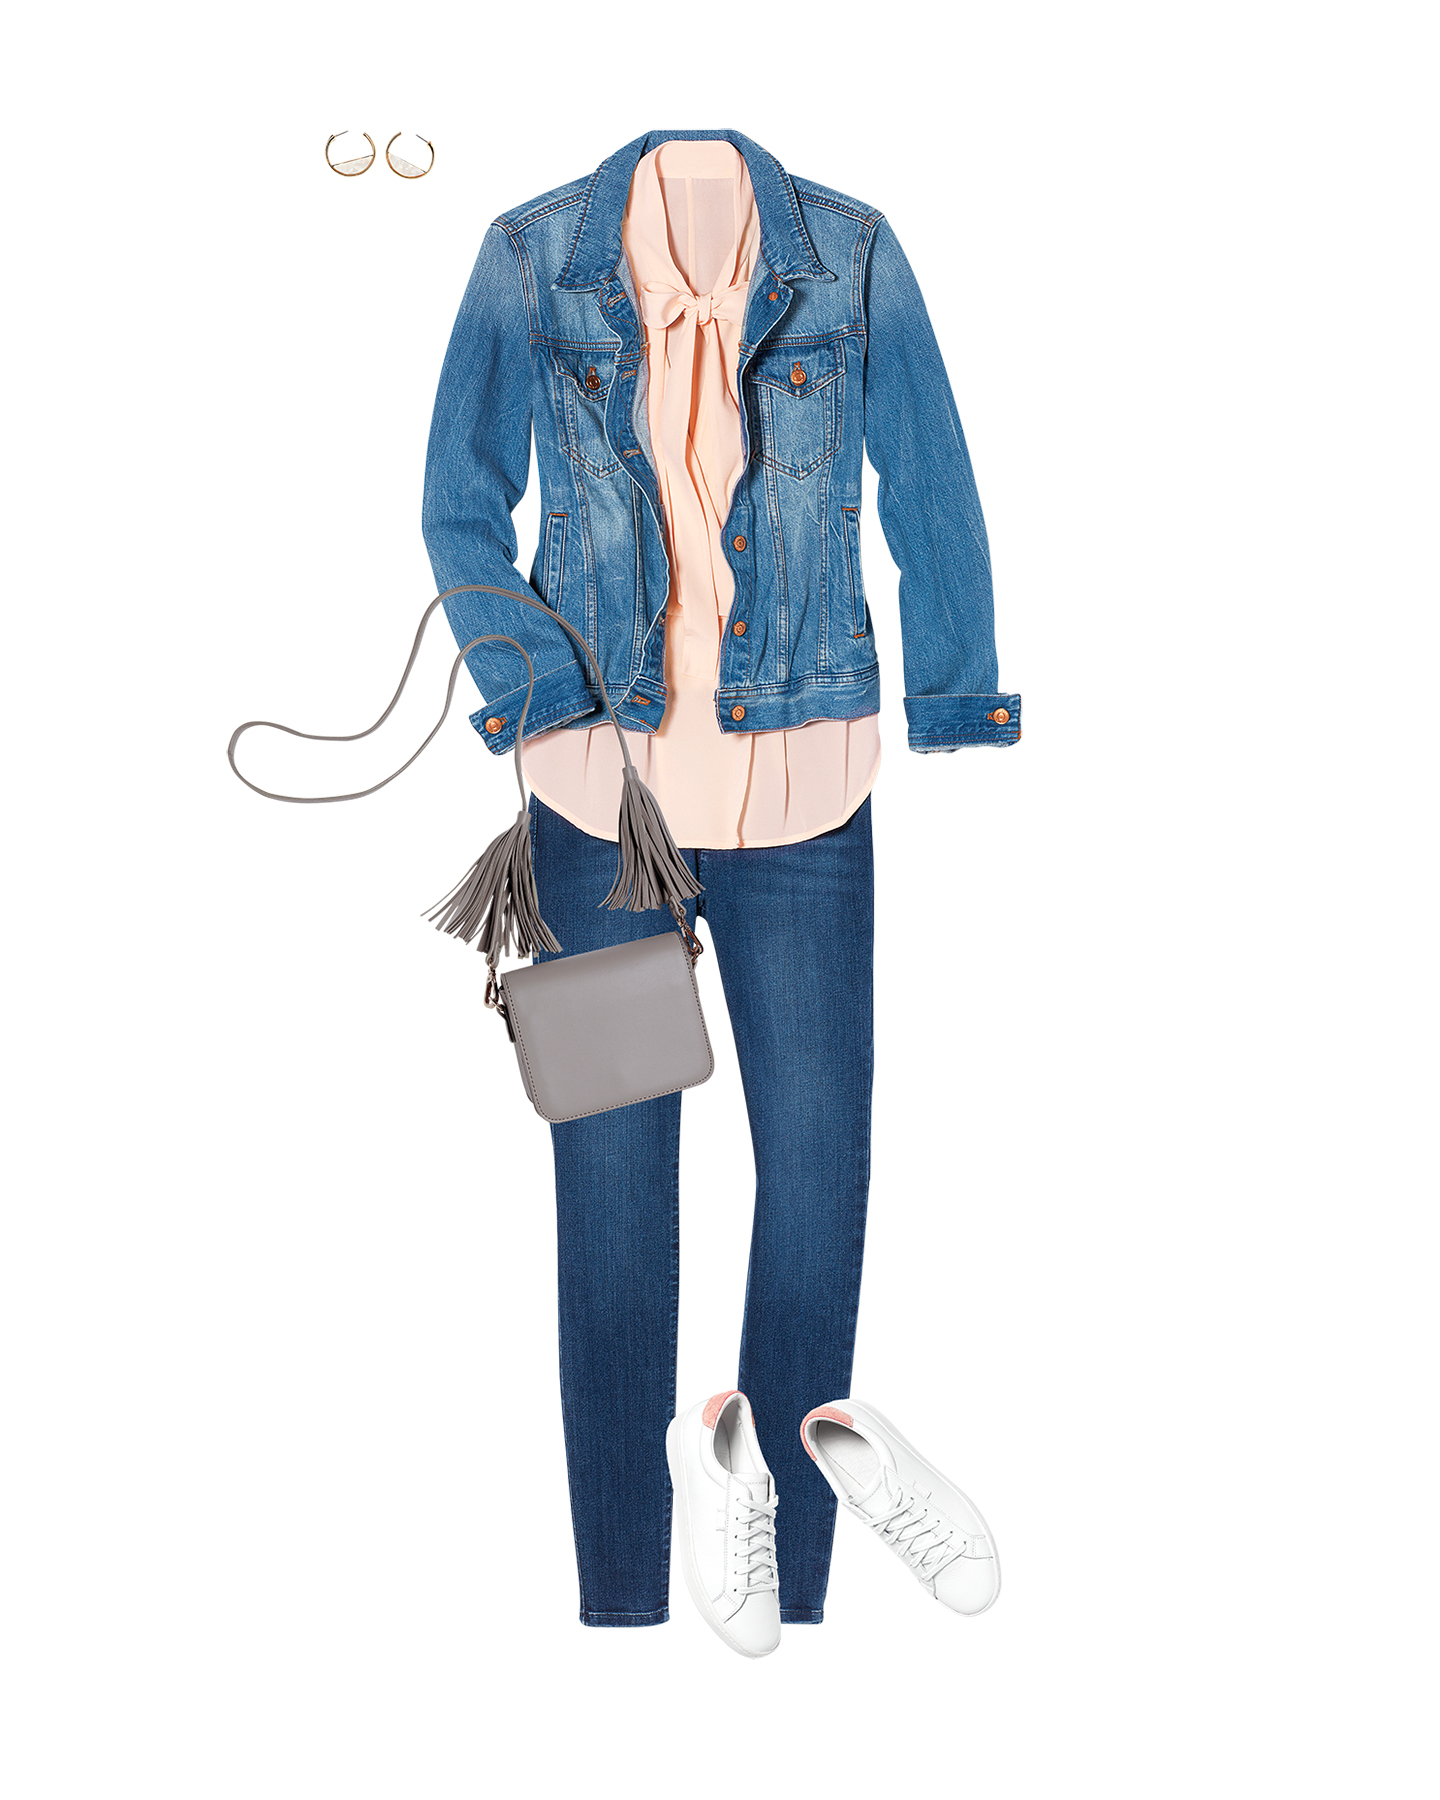 j crew jacket pink habitual blouse j jill jeans outfit kevin sweeney